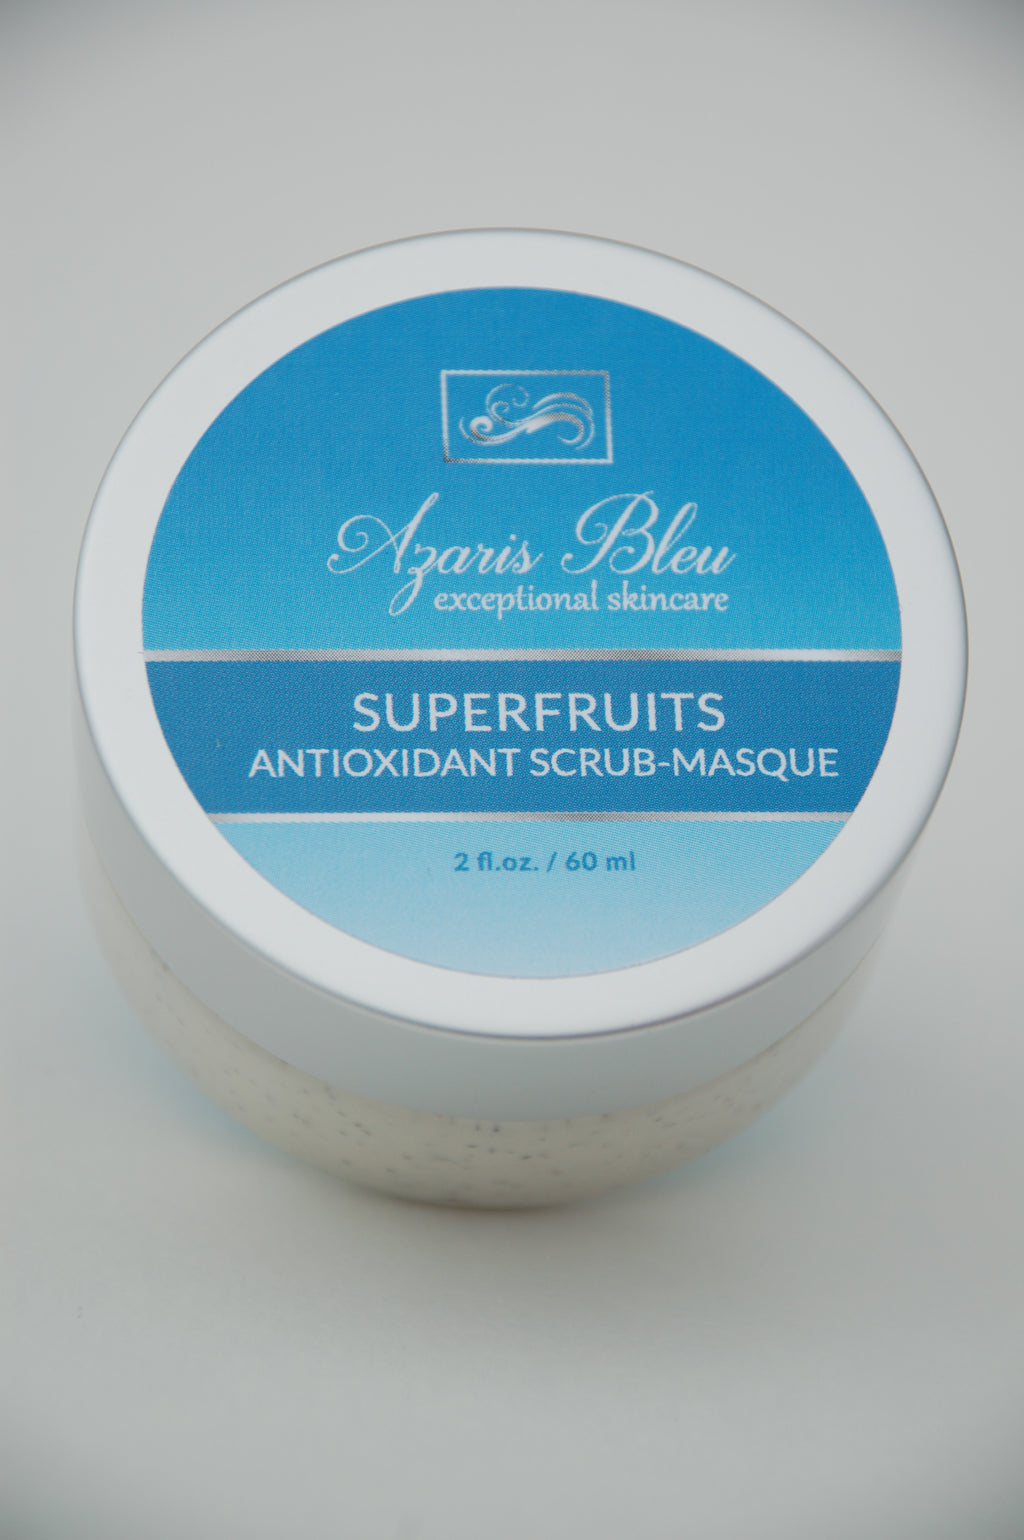 Superfruits Antioxidant Scrub-Masque (2oz.)